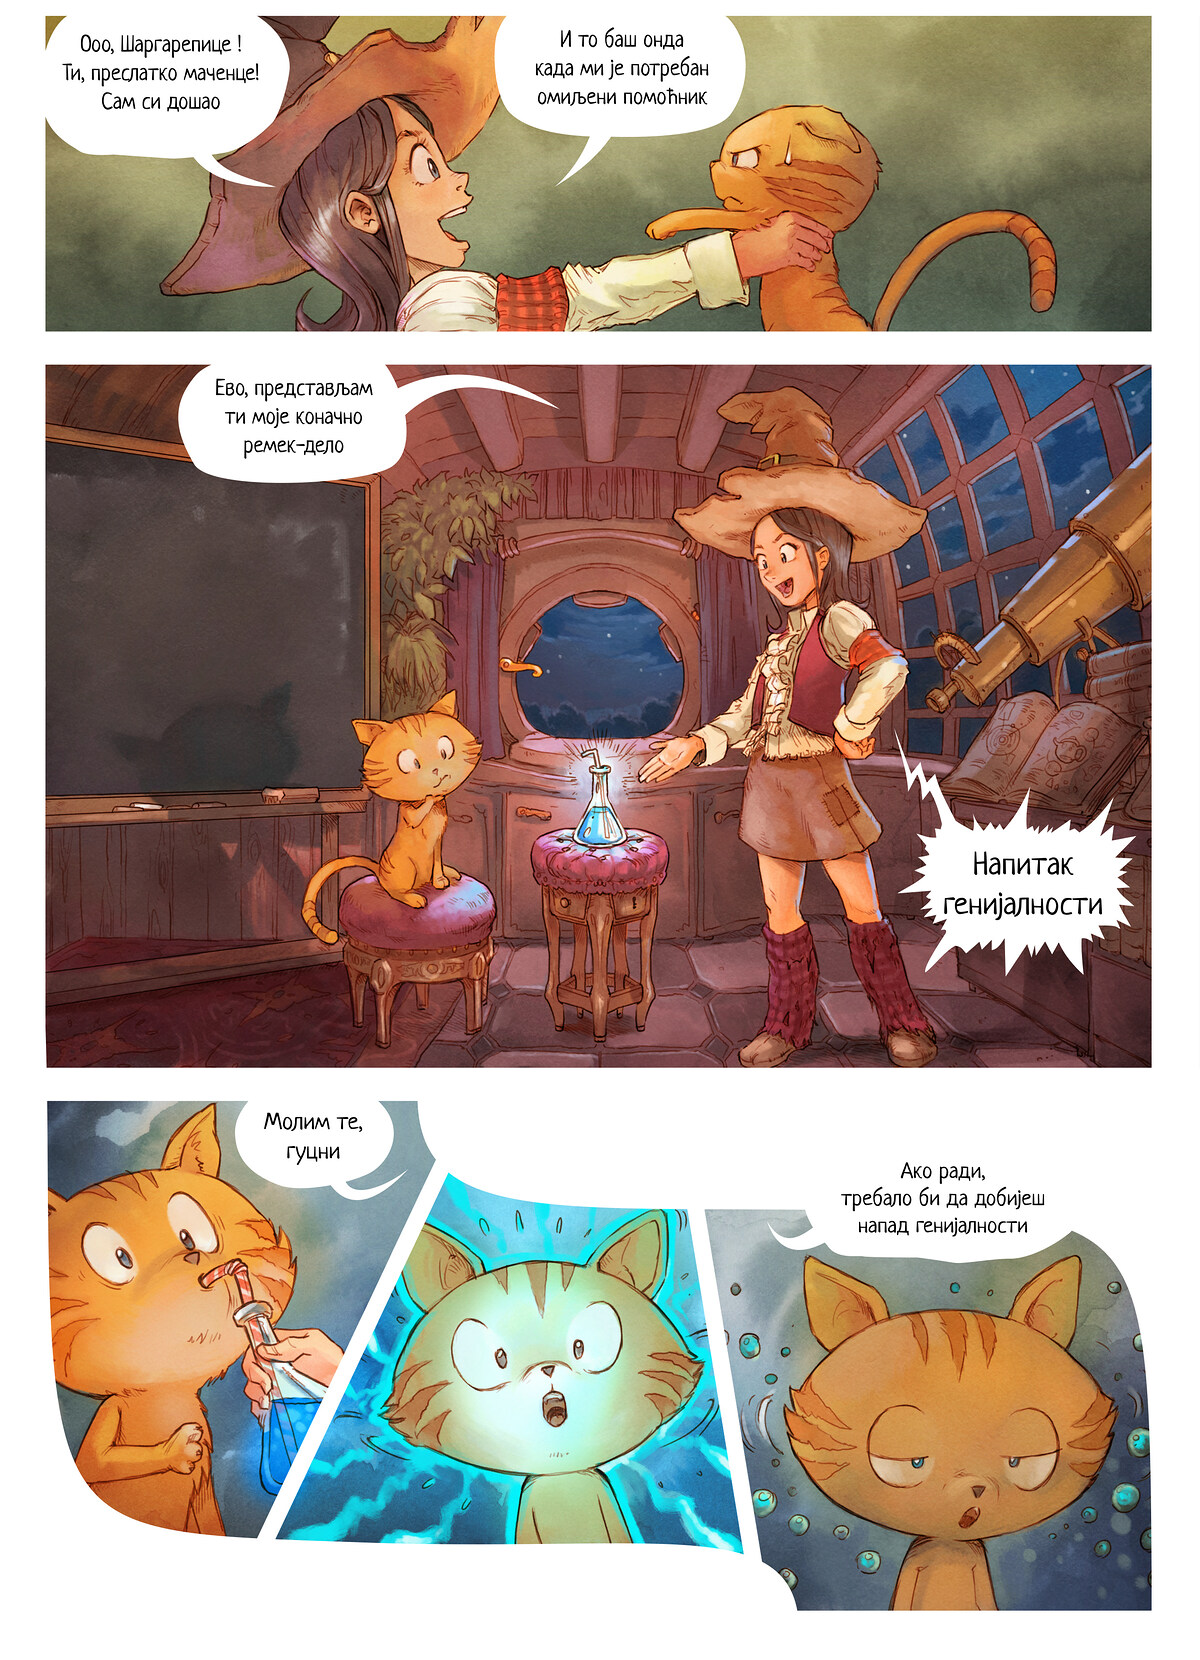 A webcomic page of Pepper&Carrot, episode 4 [sr], page 3